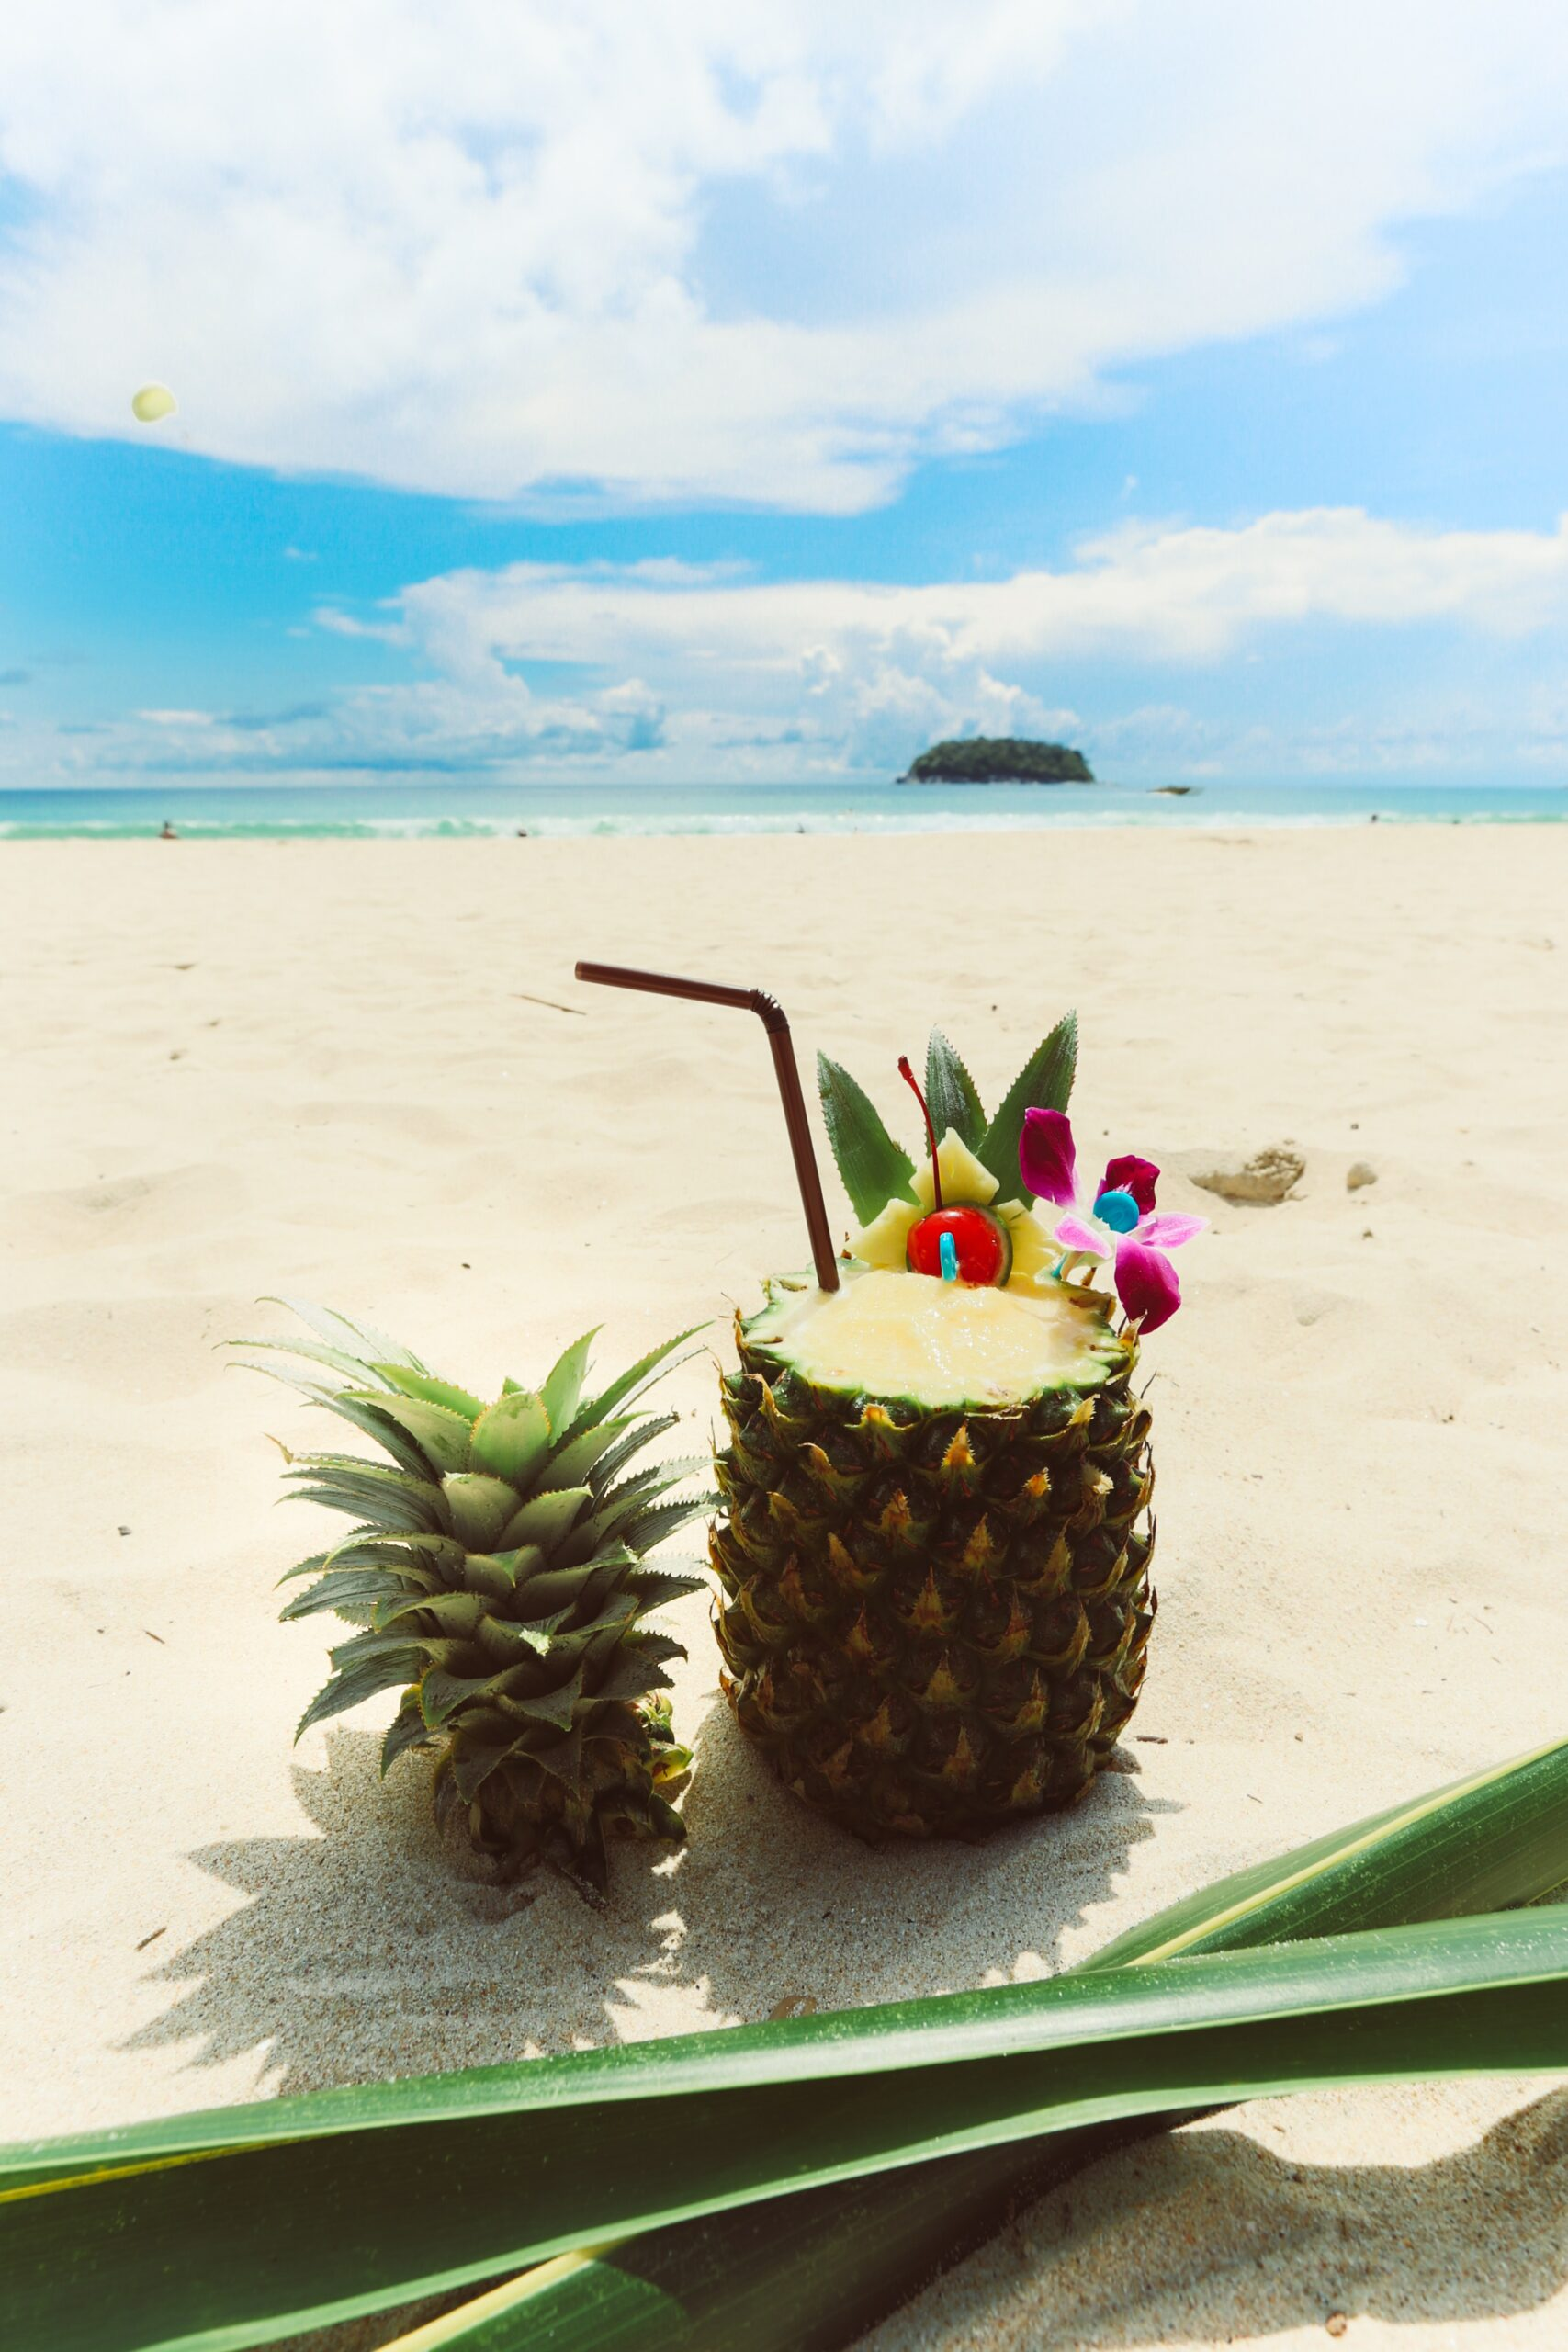 Pineapple with Top Cut Off and Straw for drinking